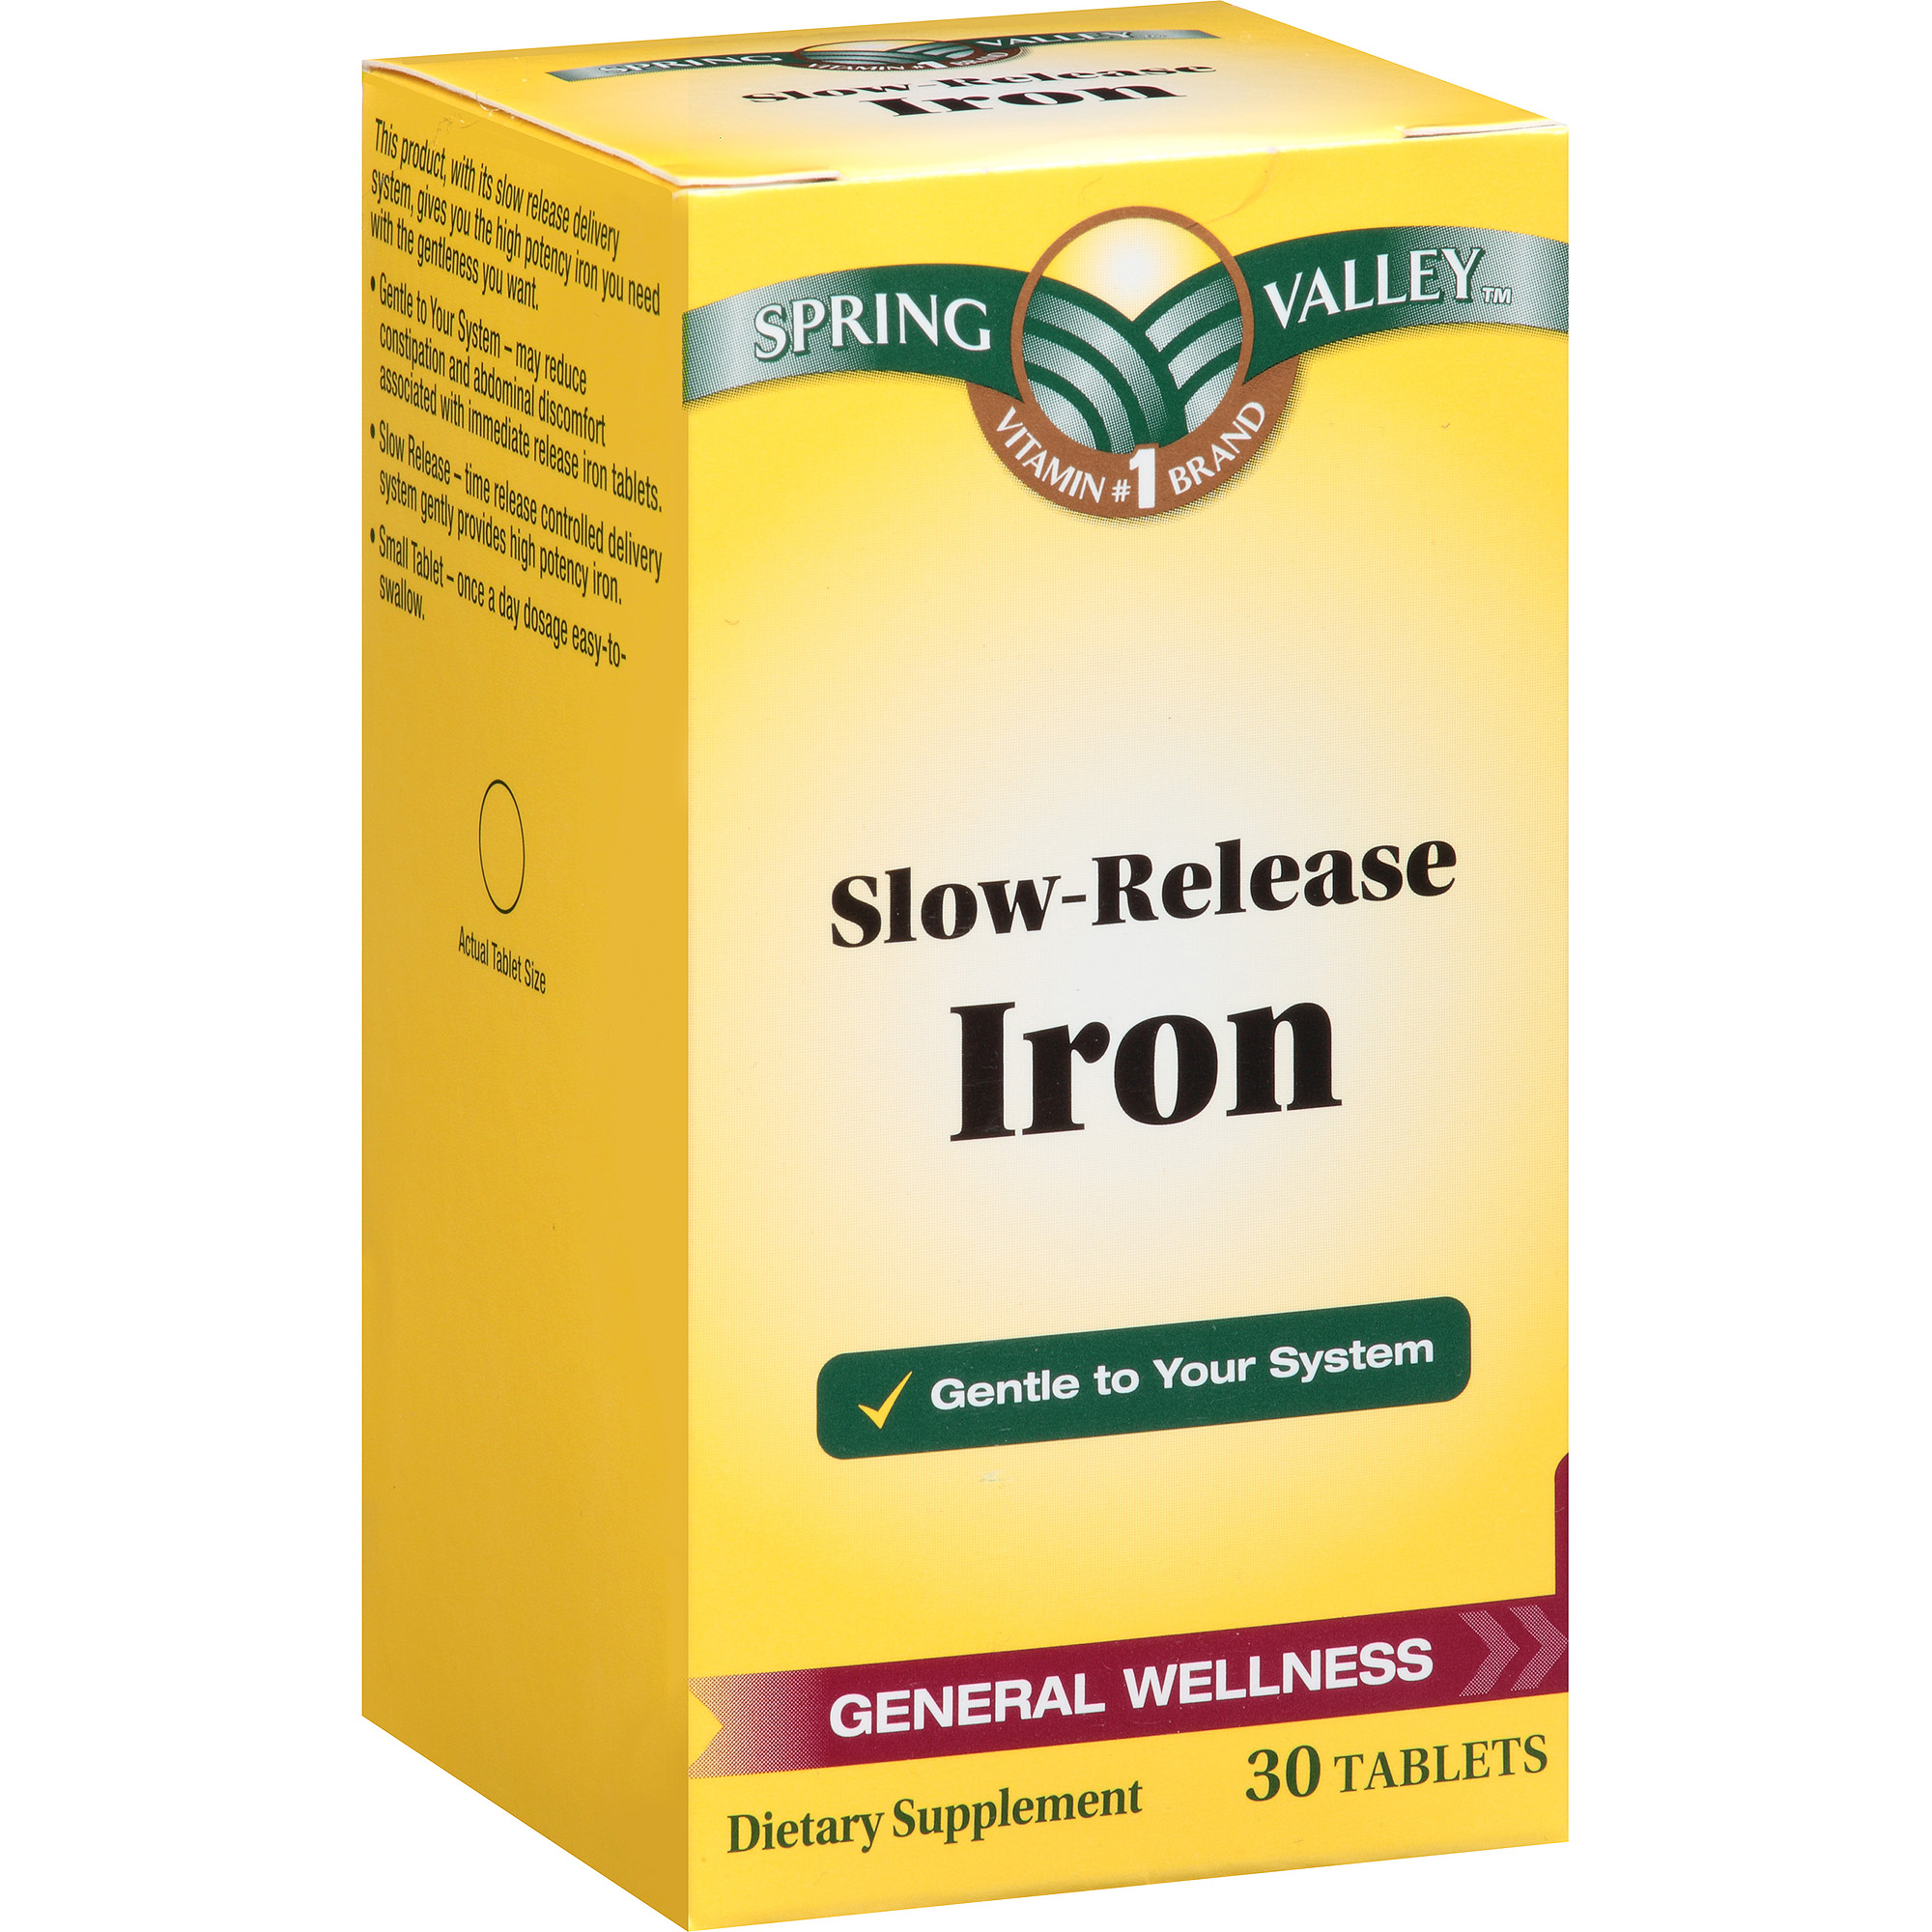 Spring Valley Slow-Release Iron Dietary Supplement Tablets, 30 count